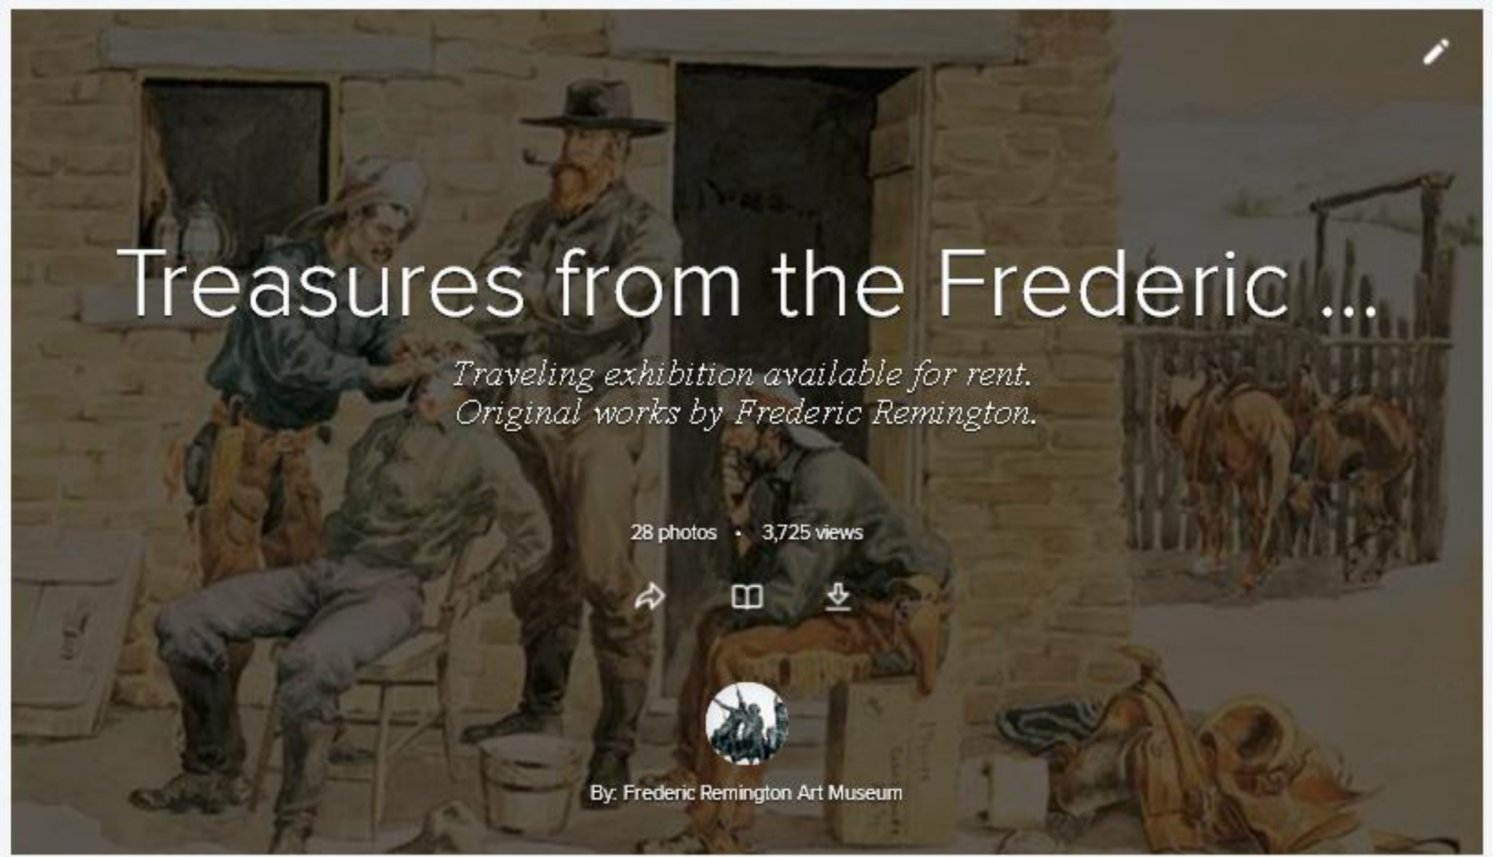 Treasures from the Frederic Remington Art Museum